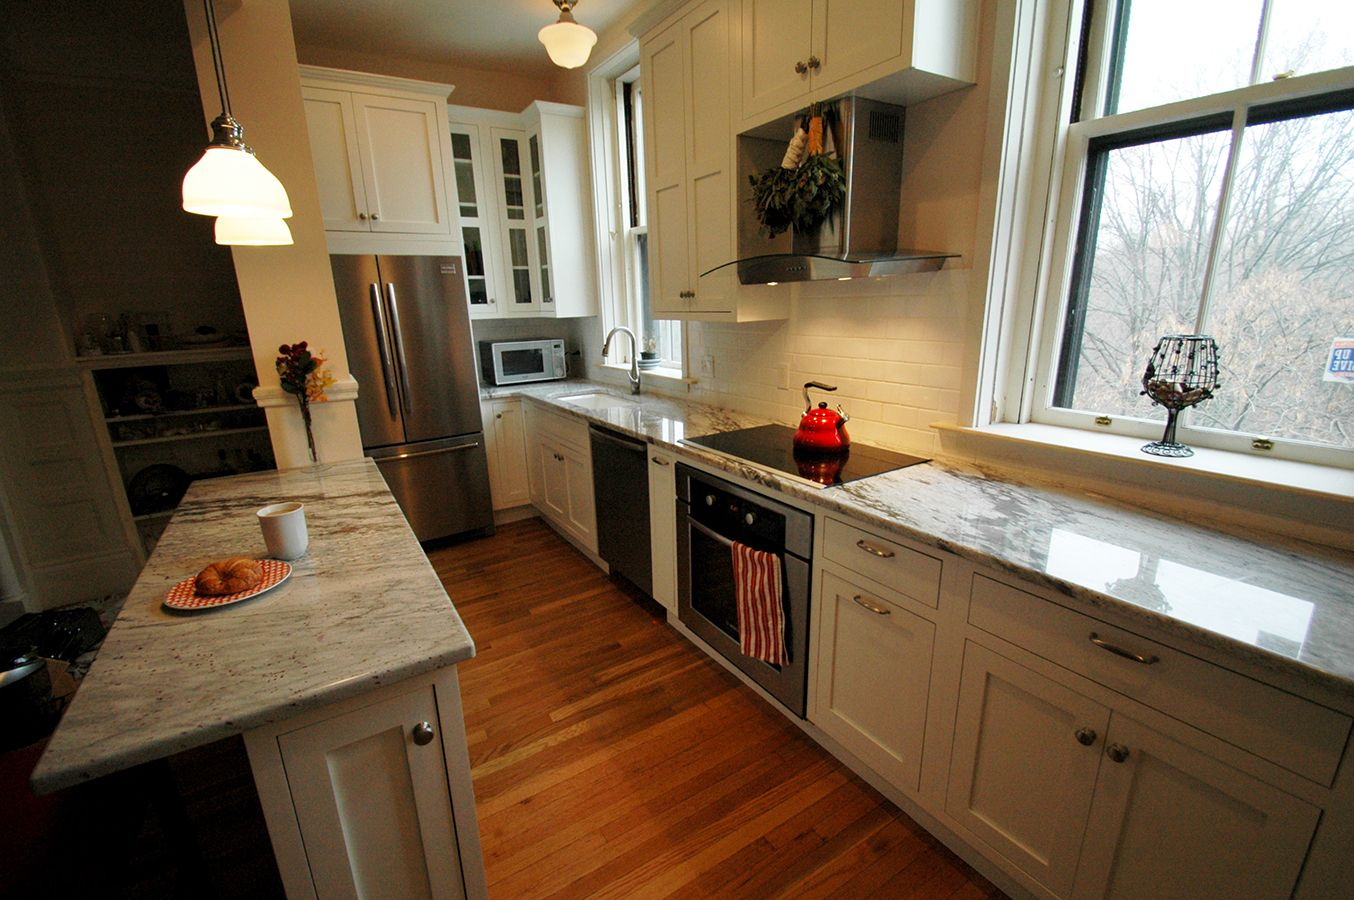 This Brookline Kitchen Remodel Features Before And After Pictures Of A  Small Galley Kitchen That Was Opened Up And Drastically Changed.